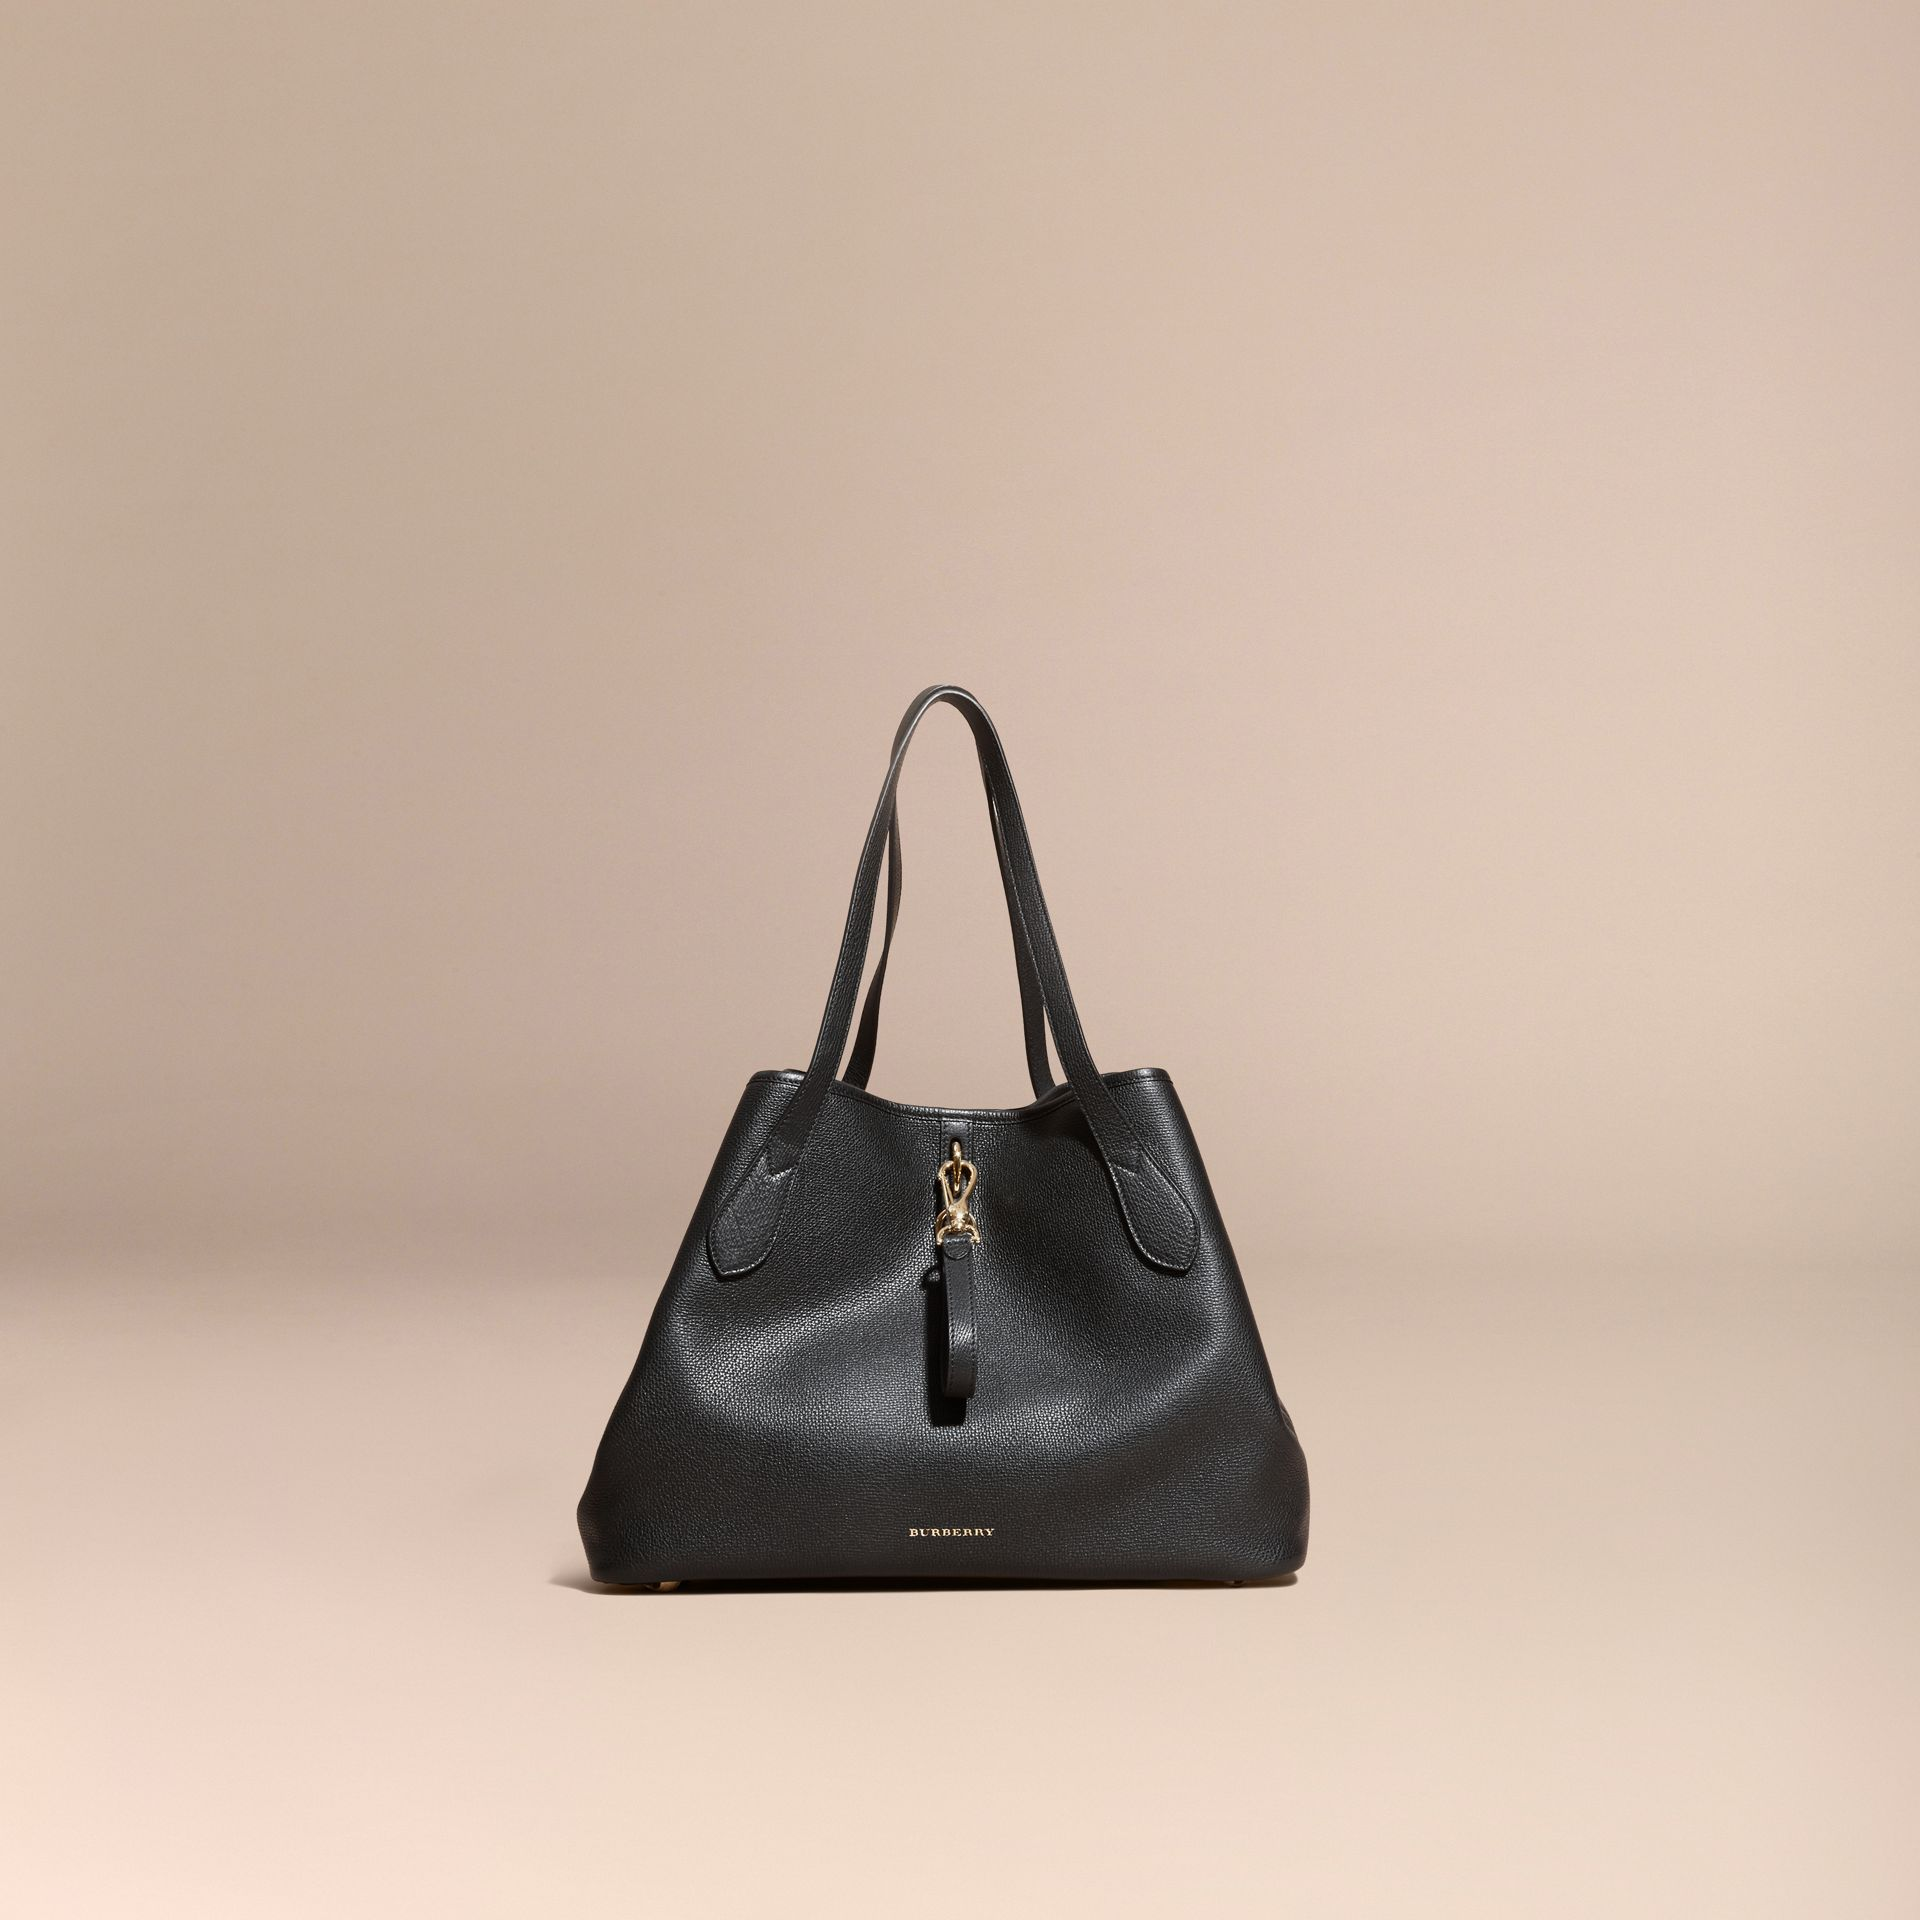 Medium Grainy Leather Tote Bag Black - gallery image 8